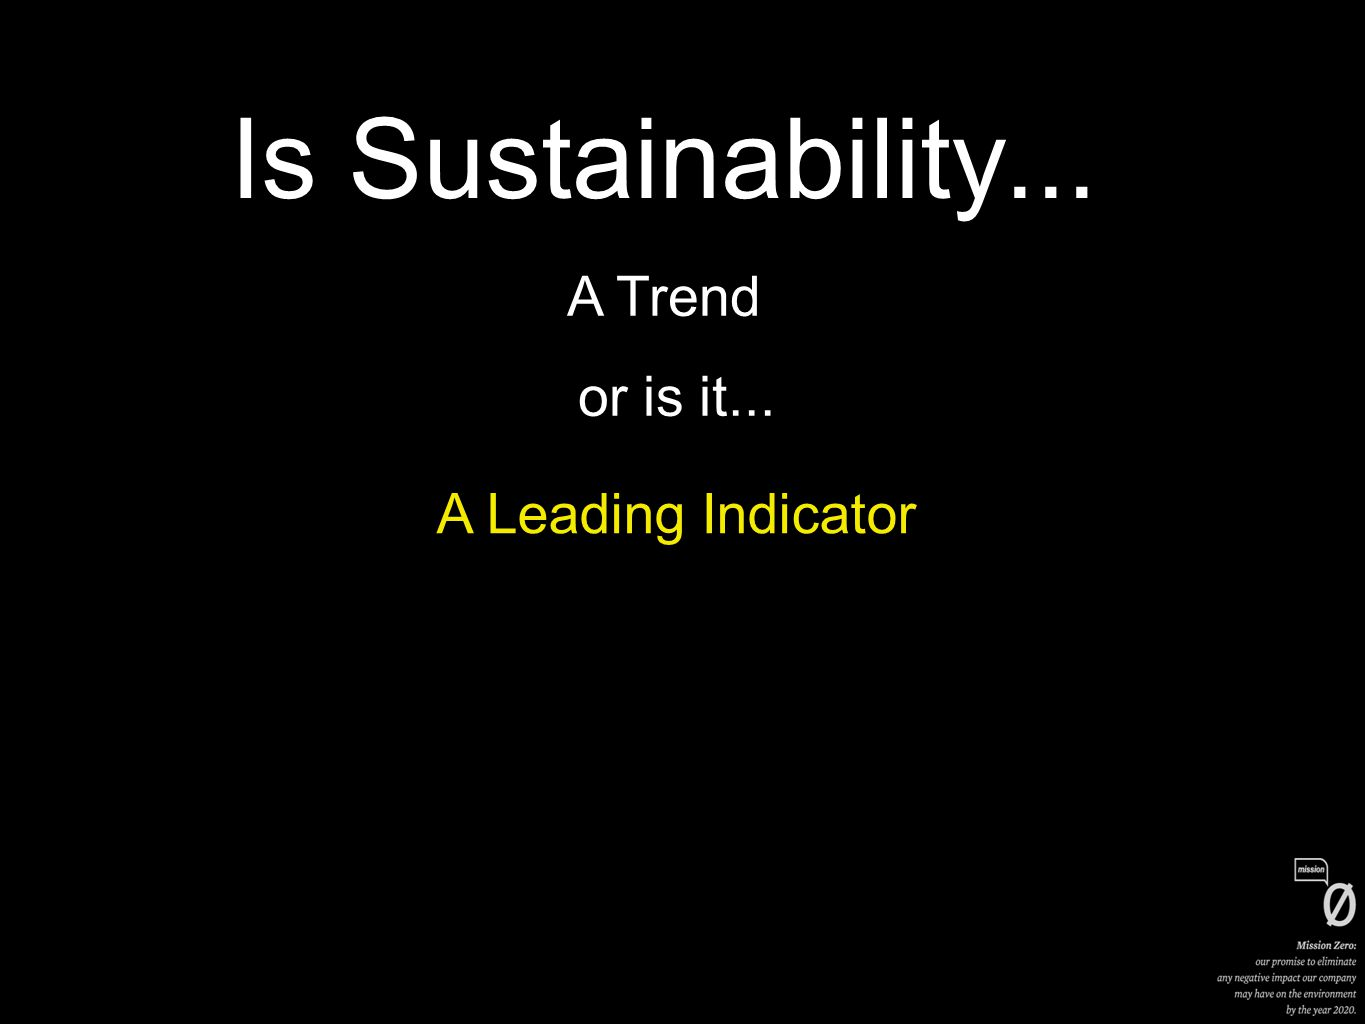 Is Sustainability... A Trend or is it... A Leading Indicator